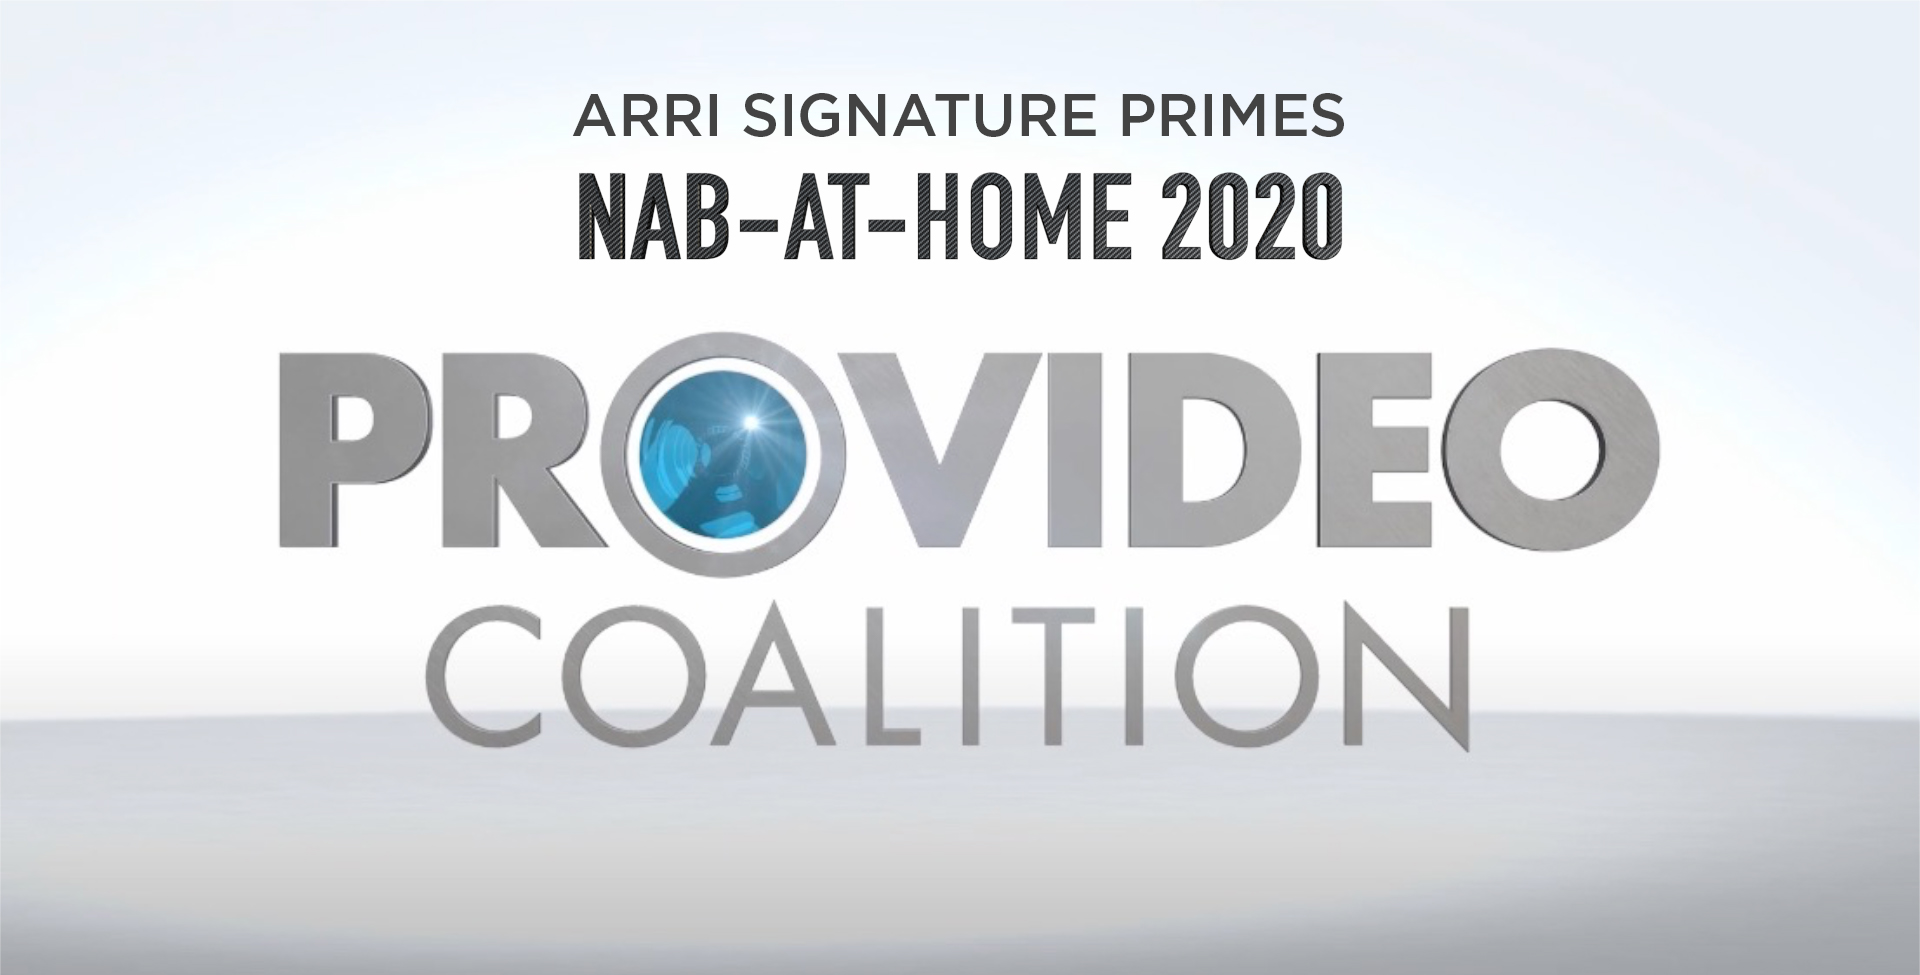 nab-at-home-2020-arri